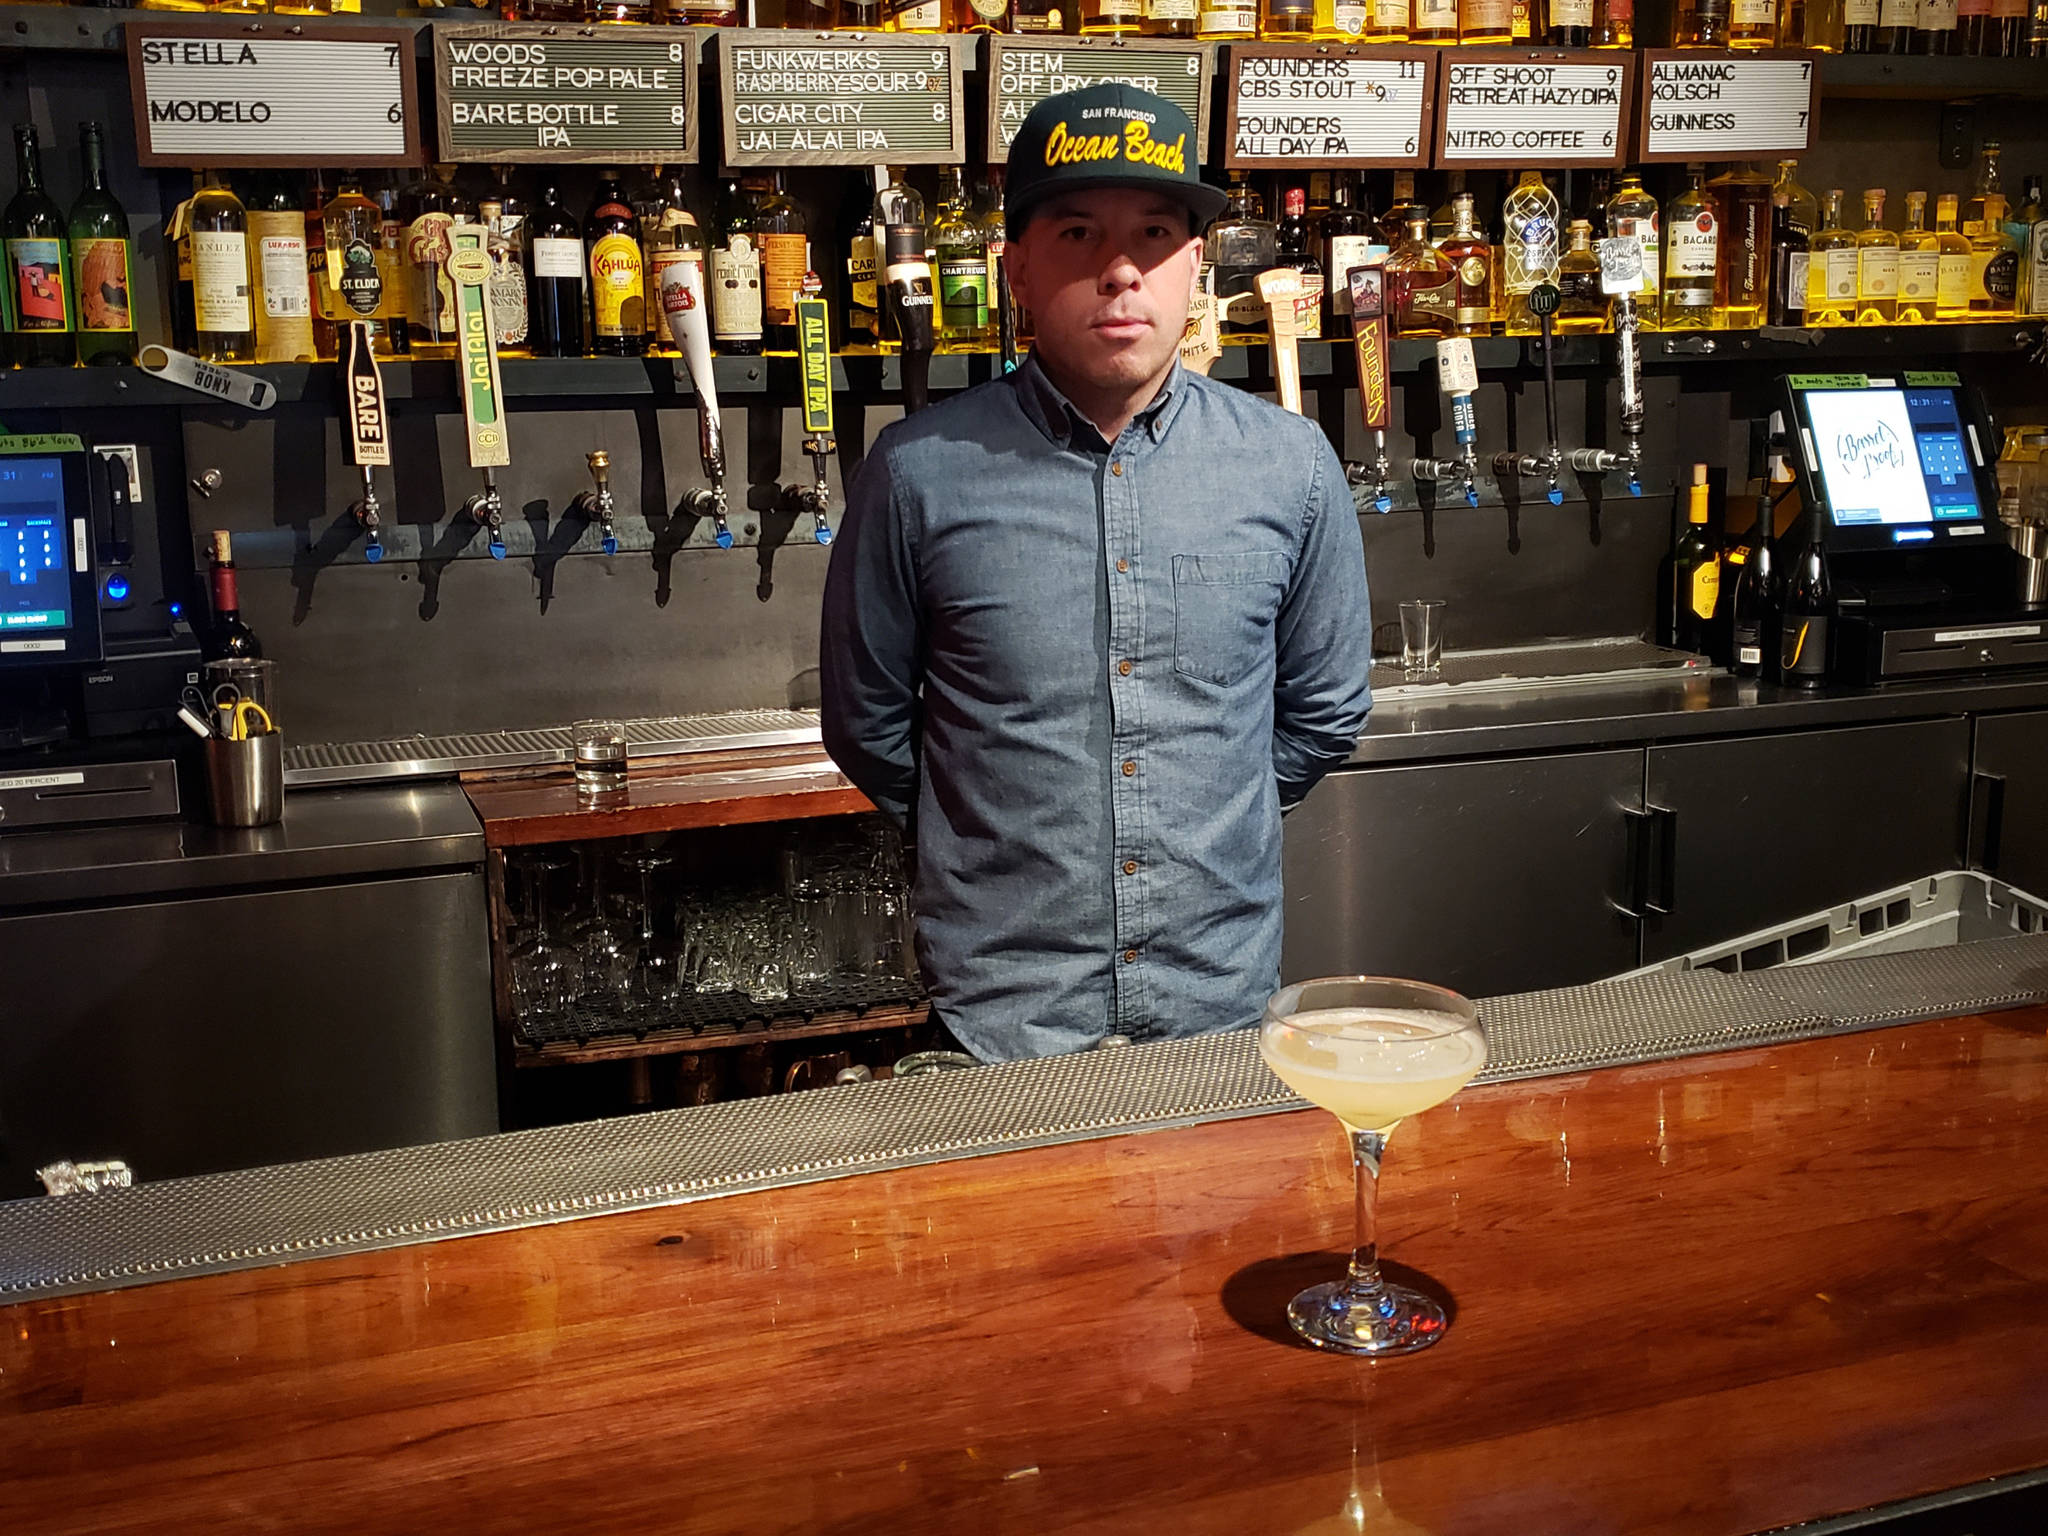 Peter Ziegler, manager of the Barrel Proof Bar & Restaurant on Mission Street, said early experiences put off many people from drinking certain liquors later in life. (Saul Sugarman/Special to S.F. Examiner)